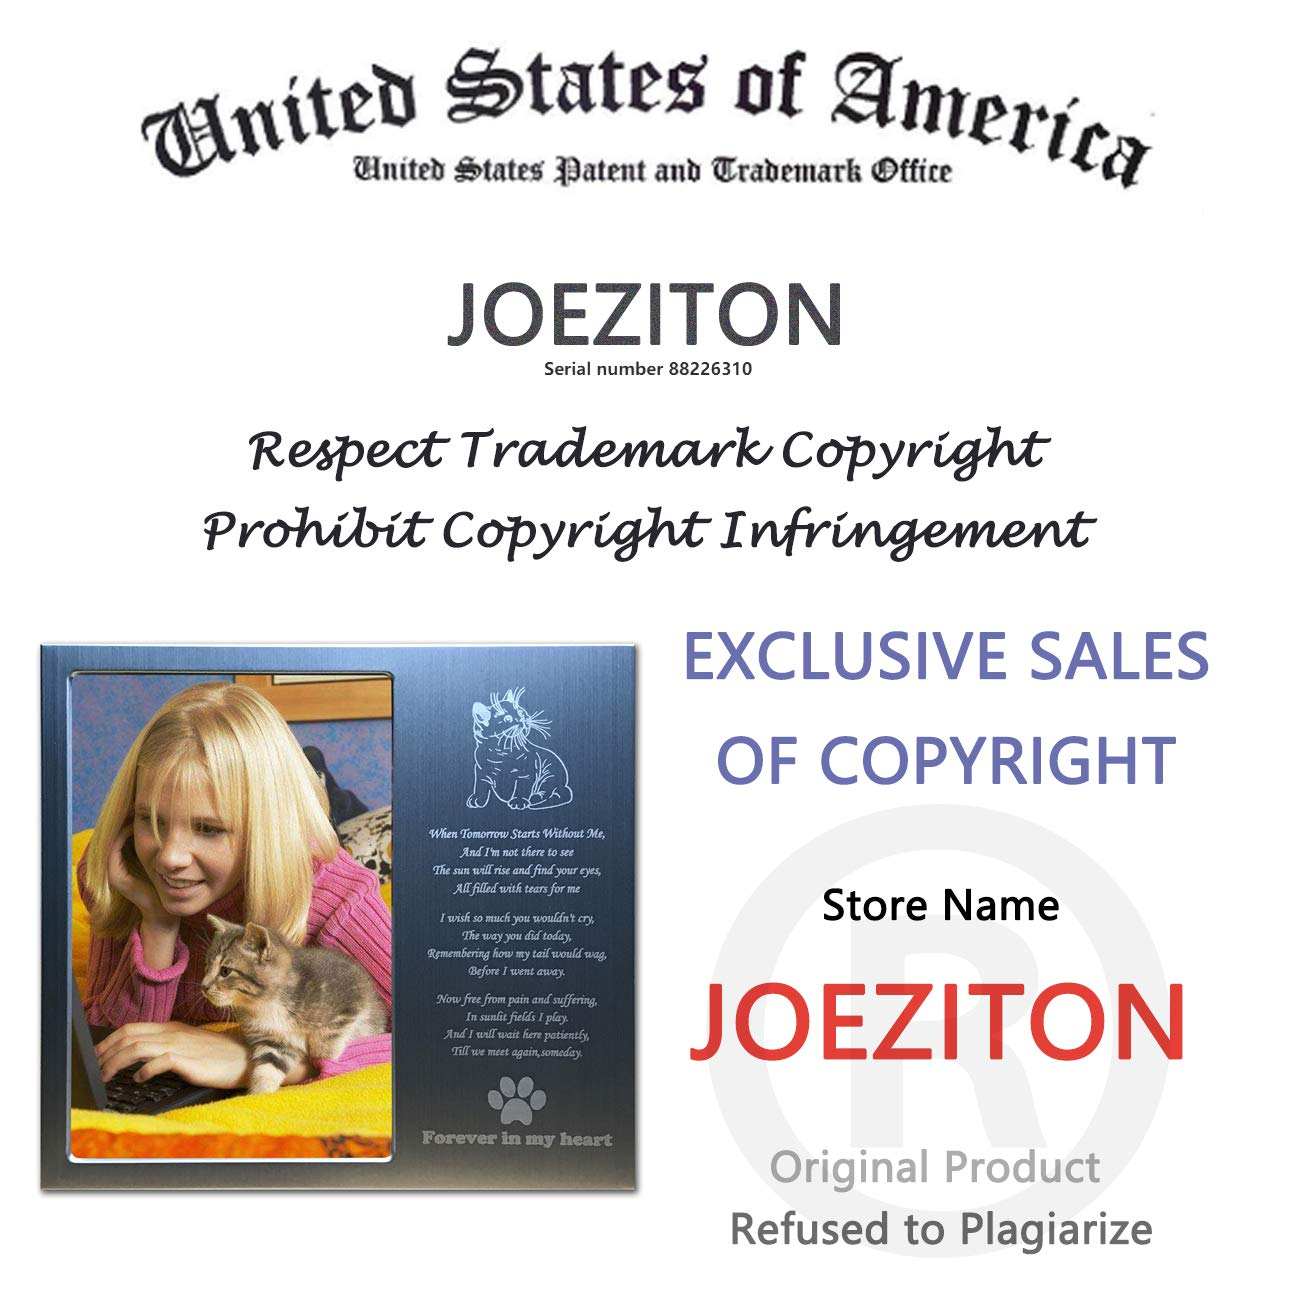 JOEZITON Pet Memorial Personalized 4x6 Picture Frame for Loss of Dogs or Cats.